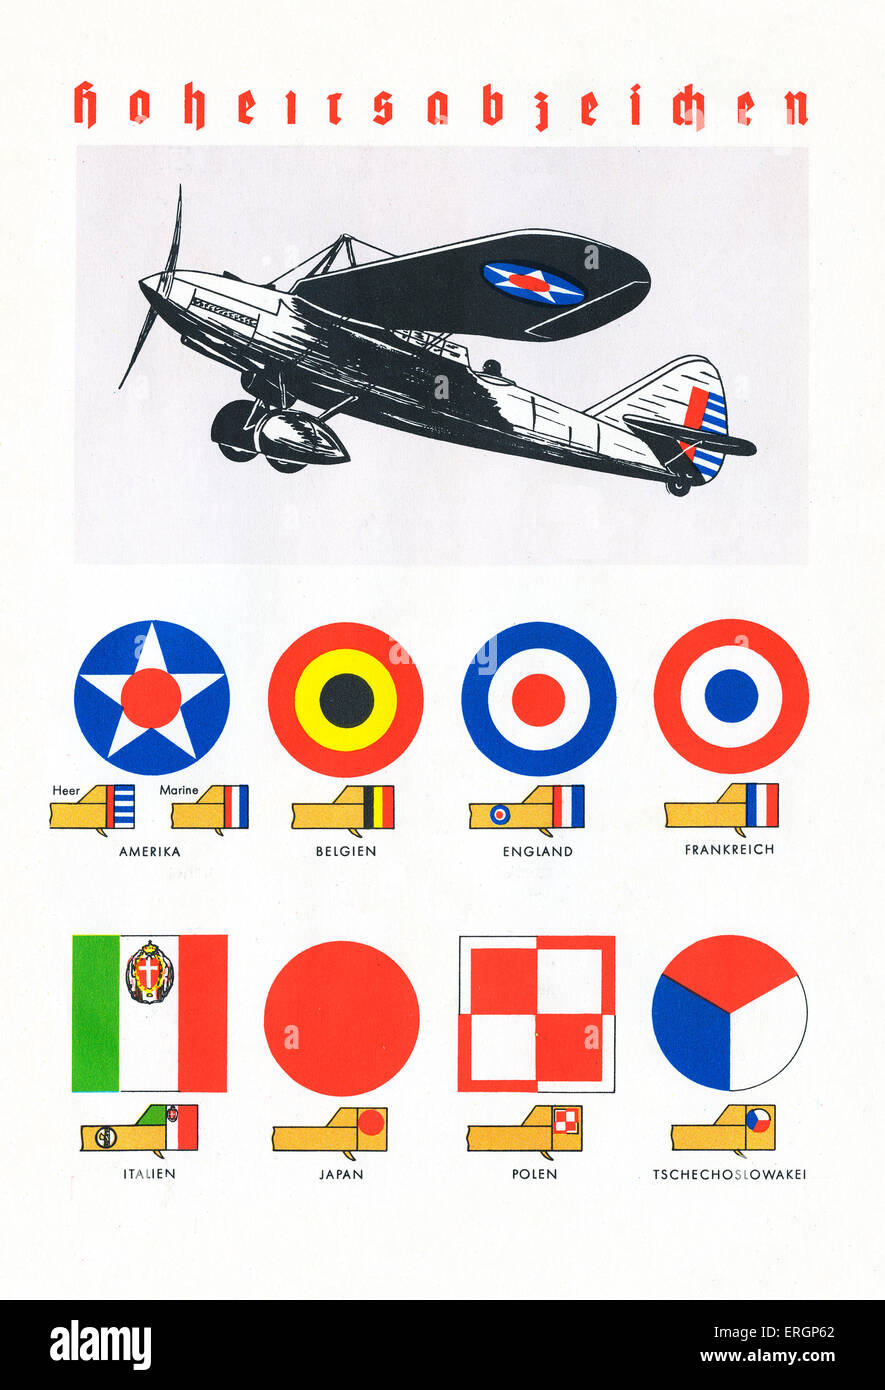 National insignia in 1930s for air force and army for America (also navy insignia), Belgium, England, France, Italy, - Stock Image